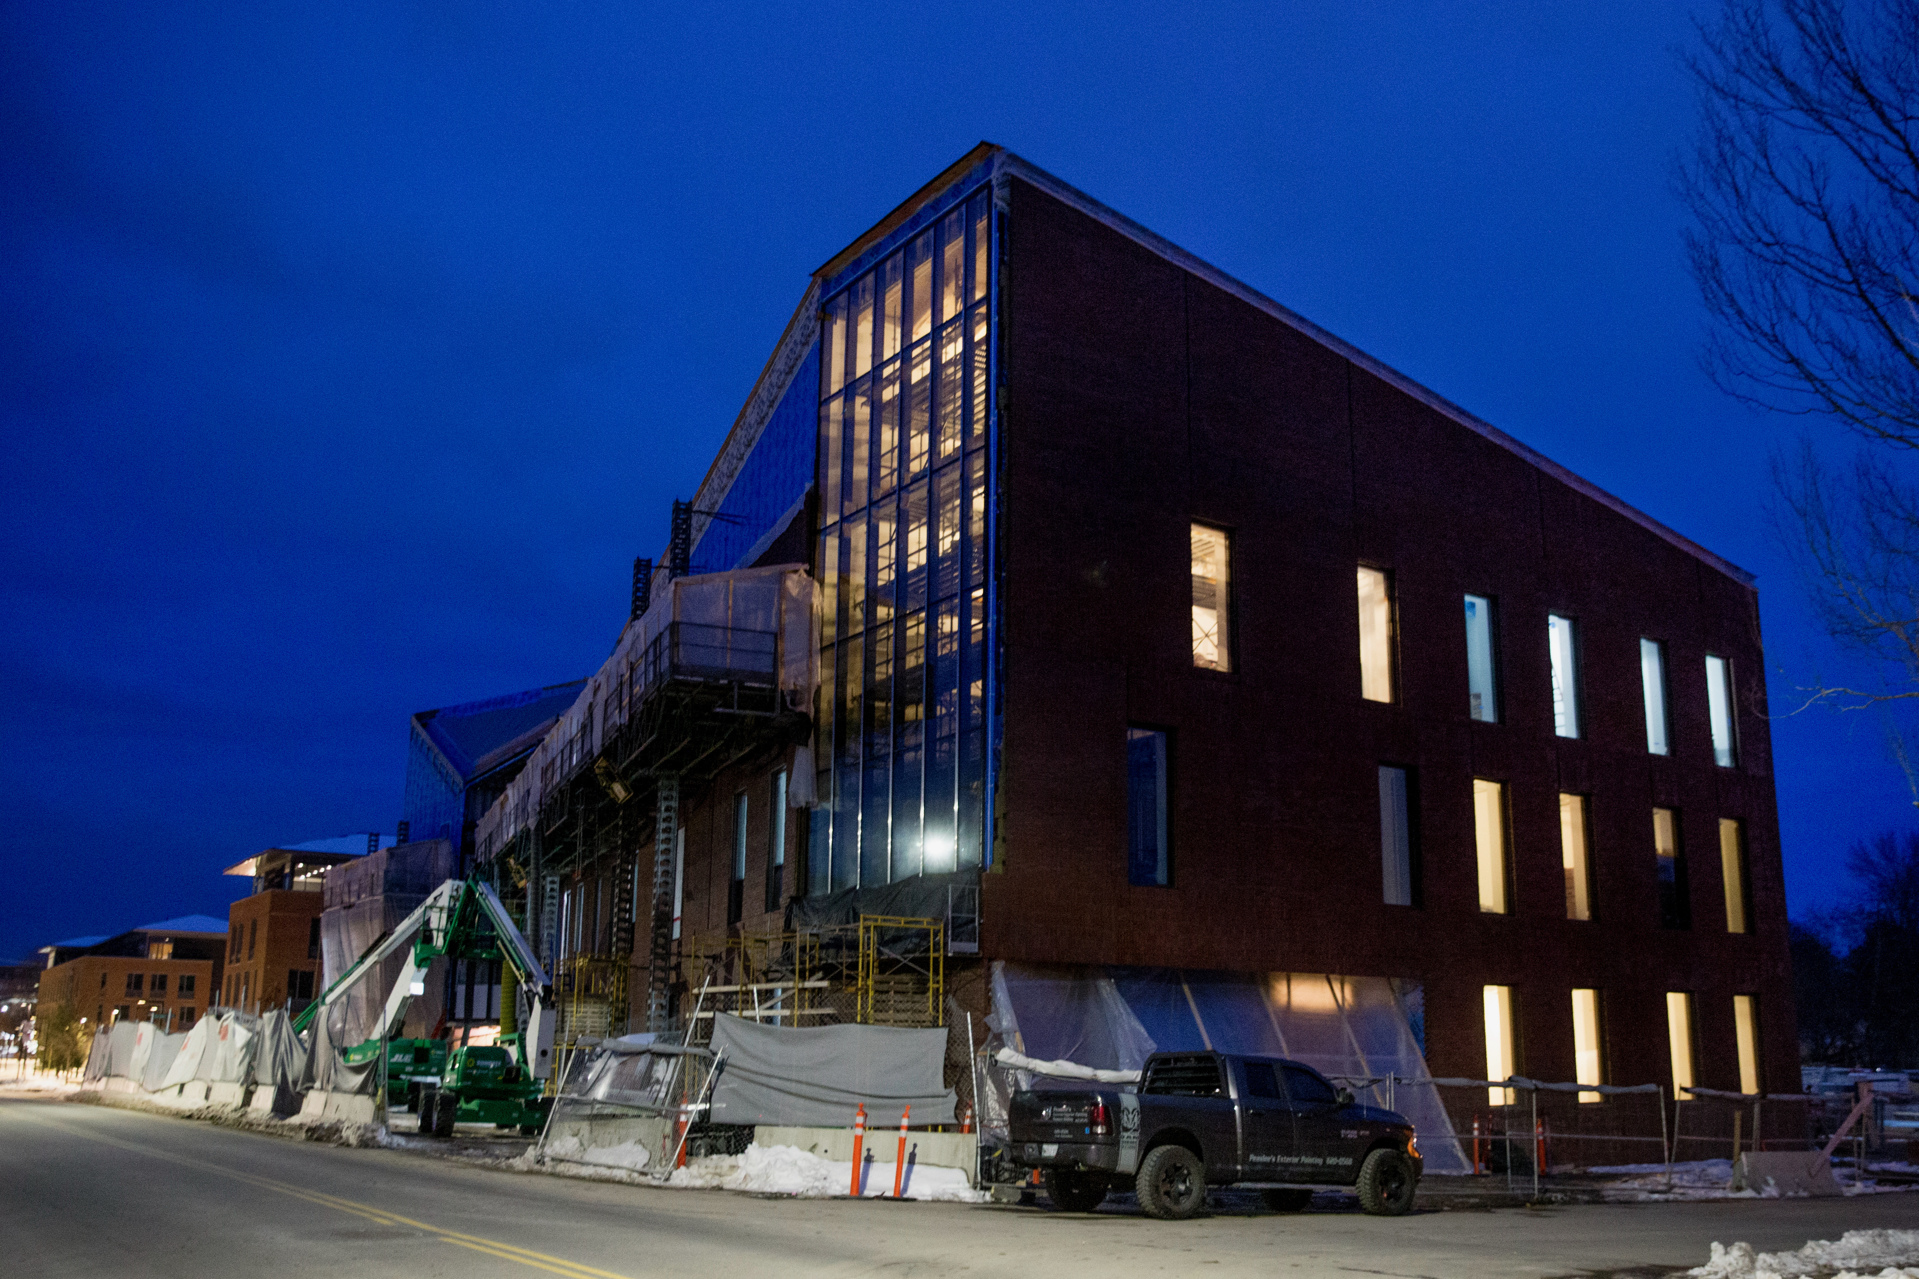 The Bonney Science Center at dusk on Jan. 13. Painters, flooring installers, and other trades work evening shifts in the building. (Phyllis Graber Jensen/Bates College)